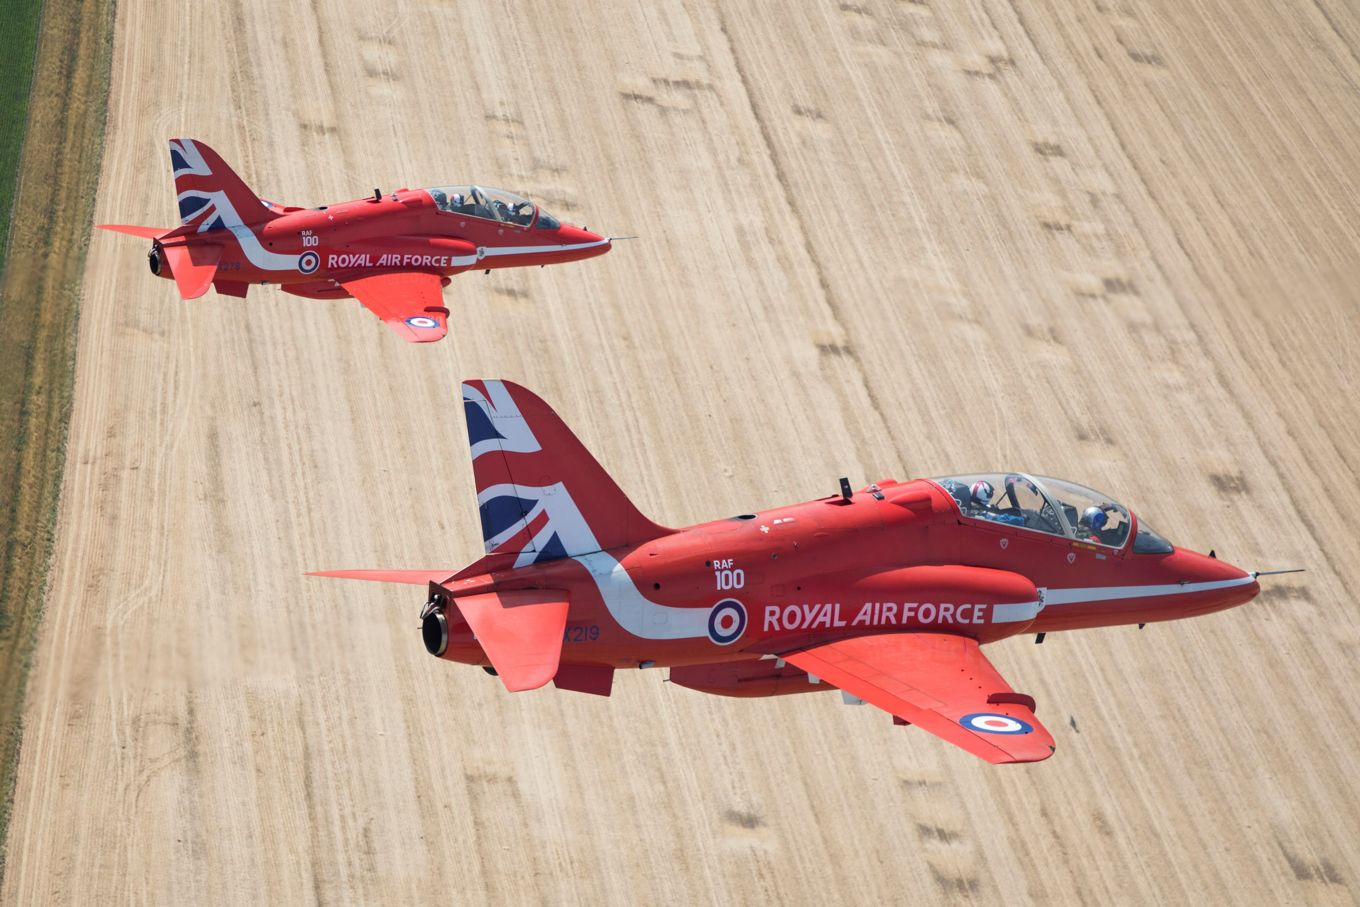 The Red Arrows just recently concluded their 2018 show season celebrating RAF100.